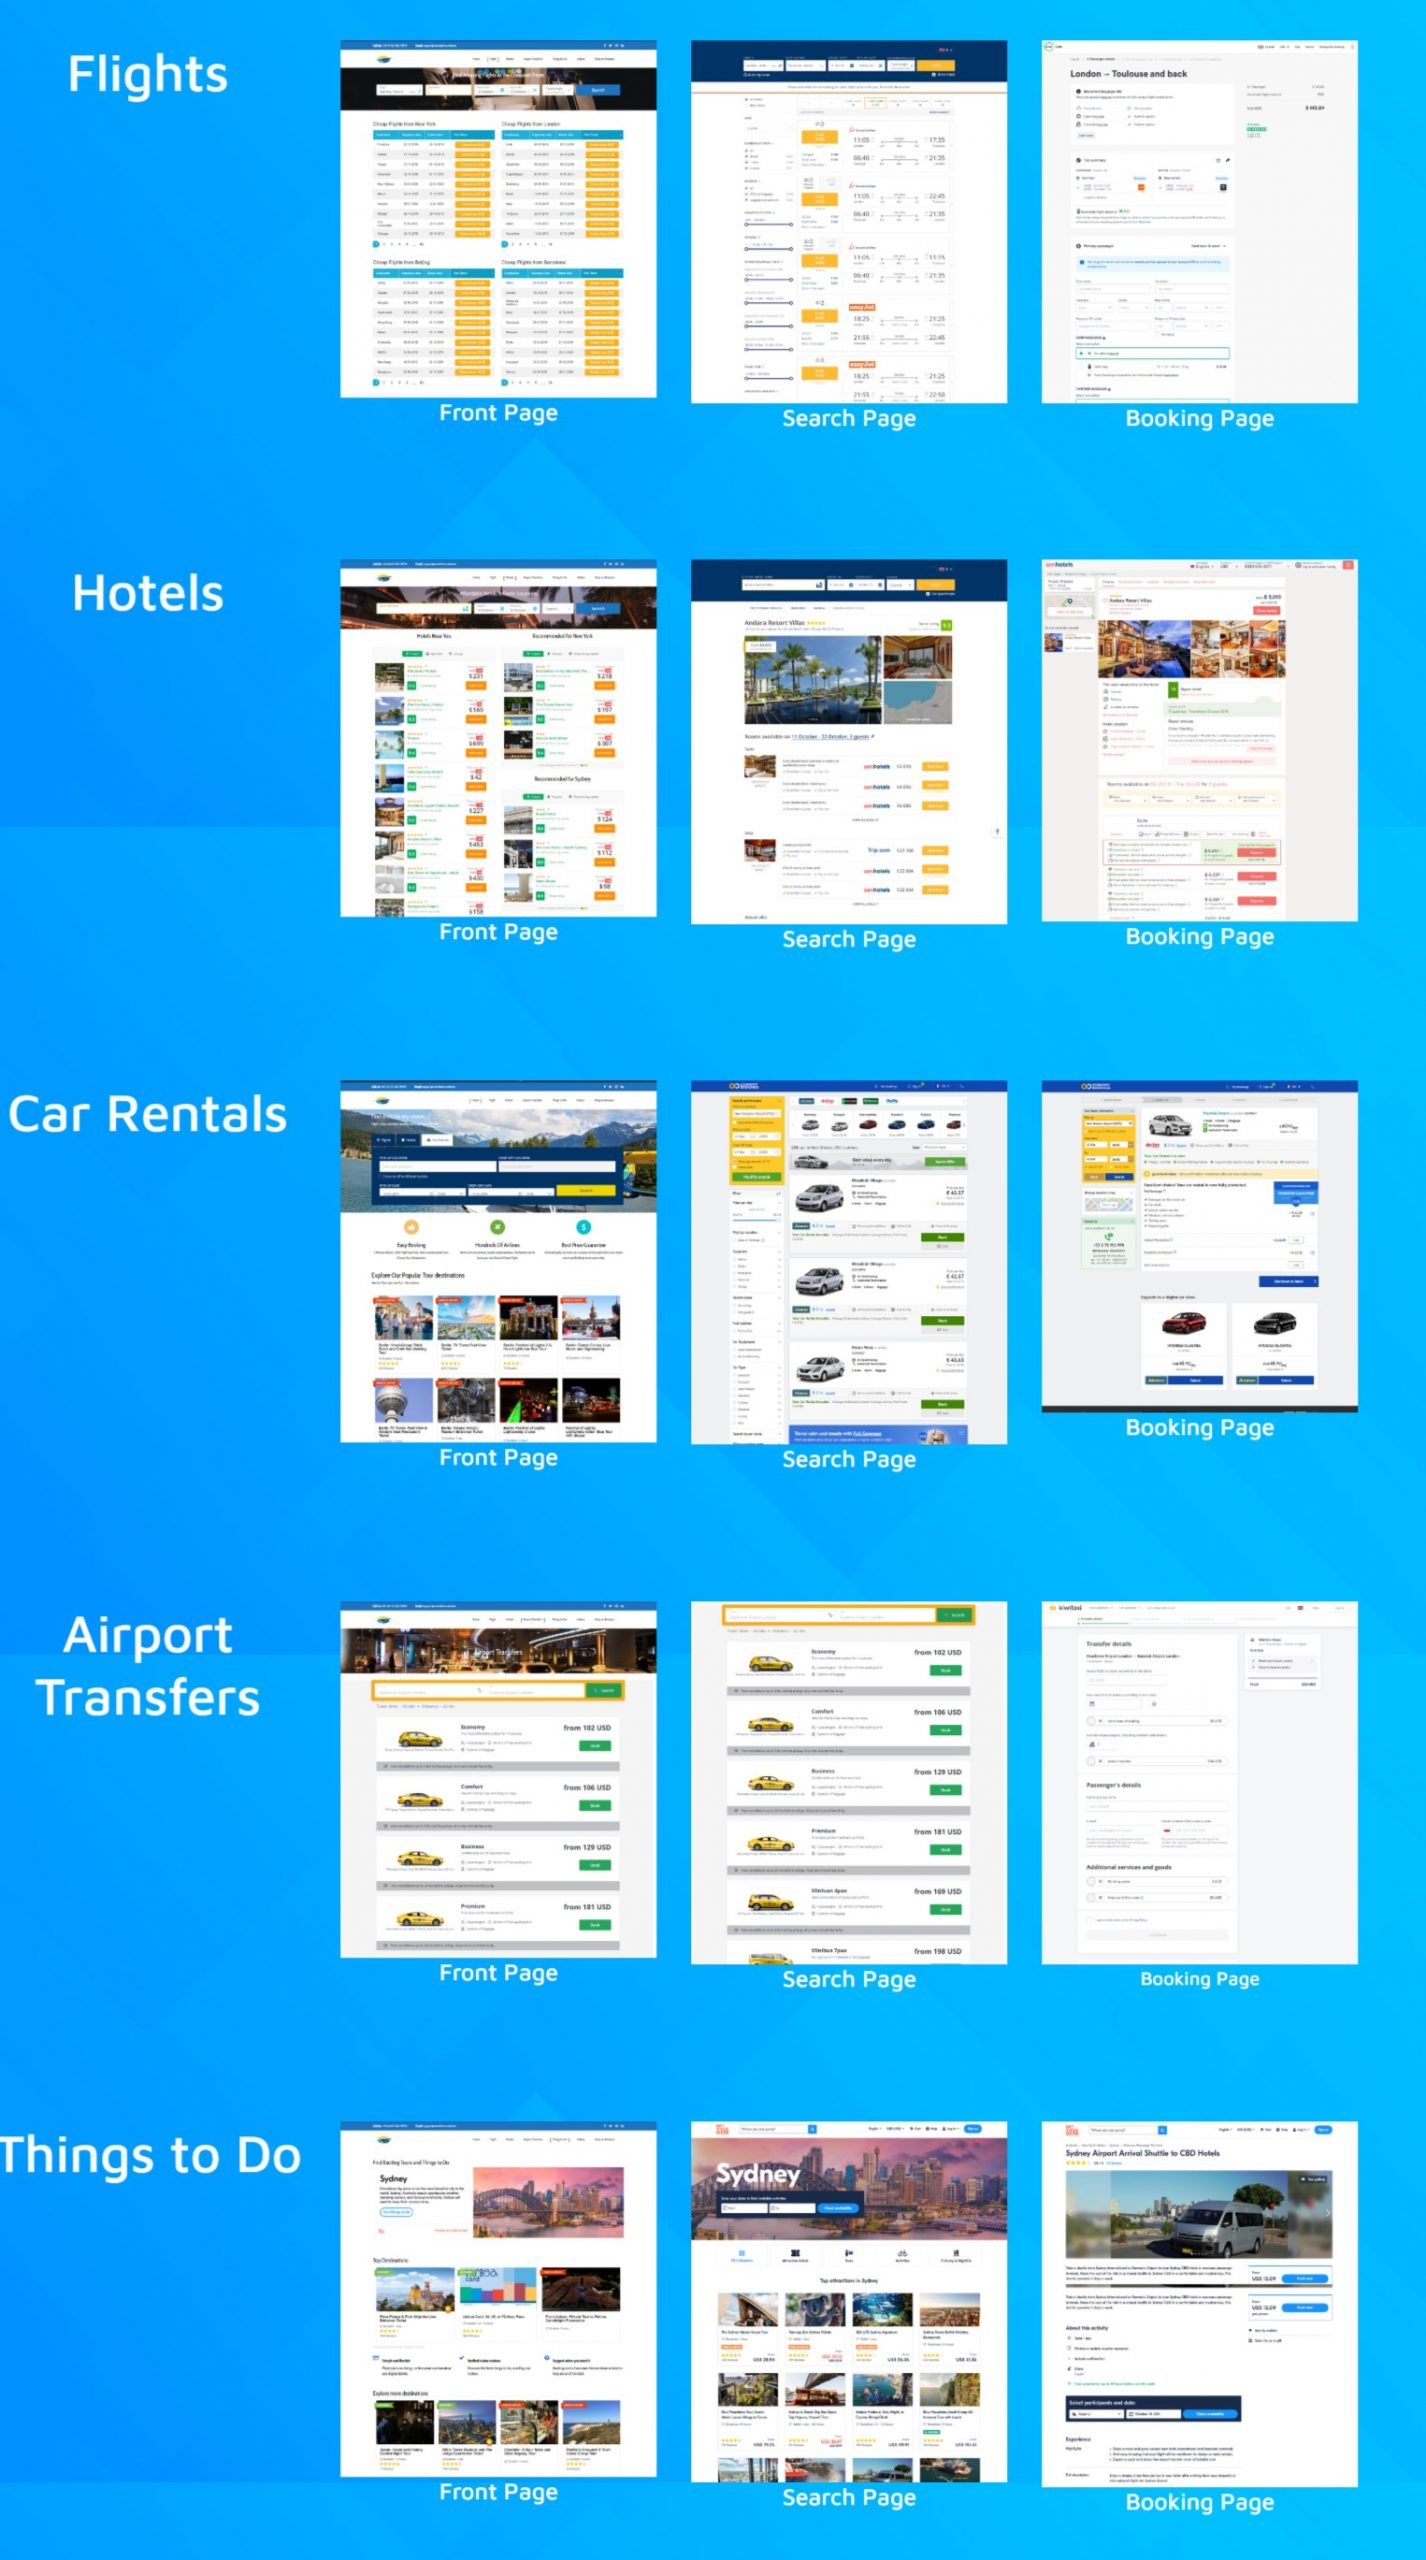 WP-Automated-Travel-Website-1-feature-1